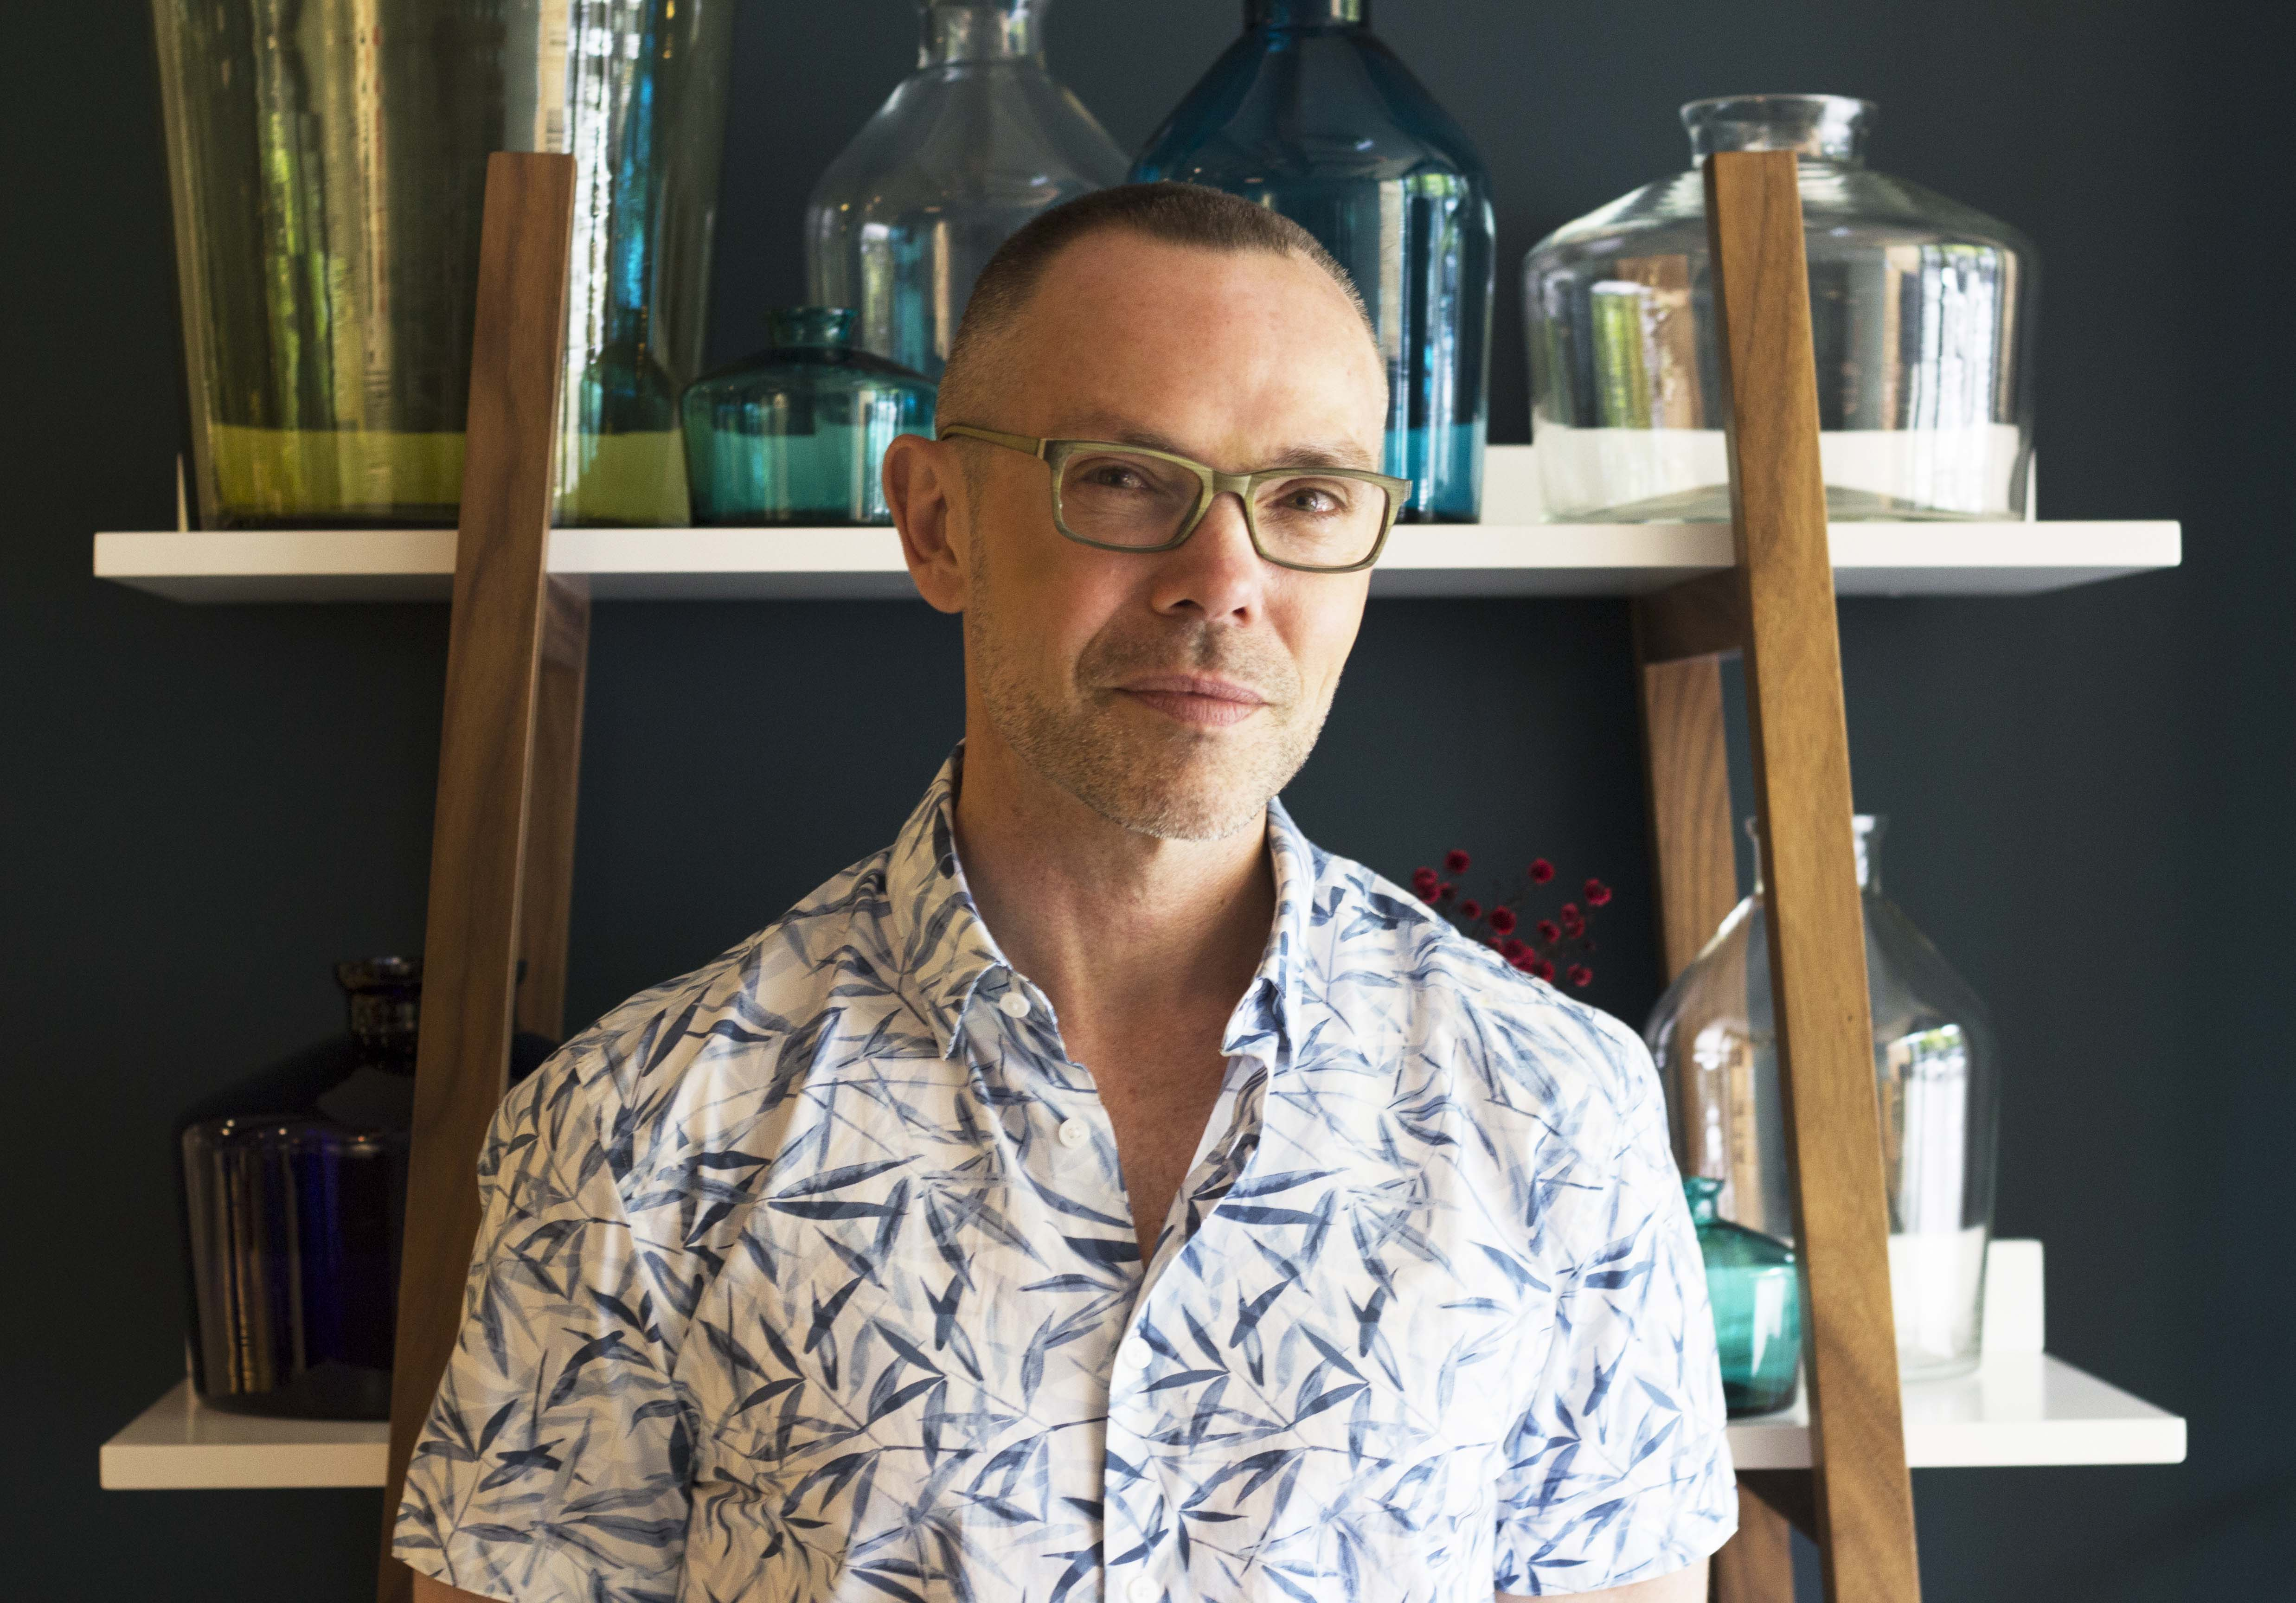 Tackling The Bison: Brian Tunks' Journey With Canberra's Long Running Ceramics Studio